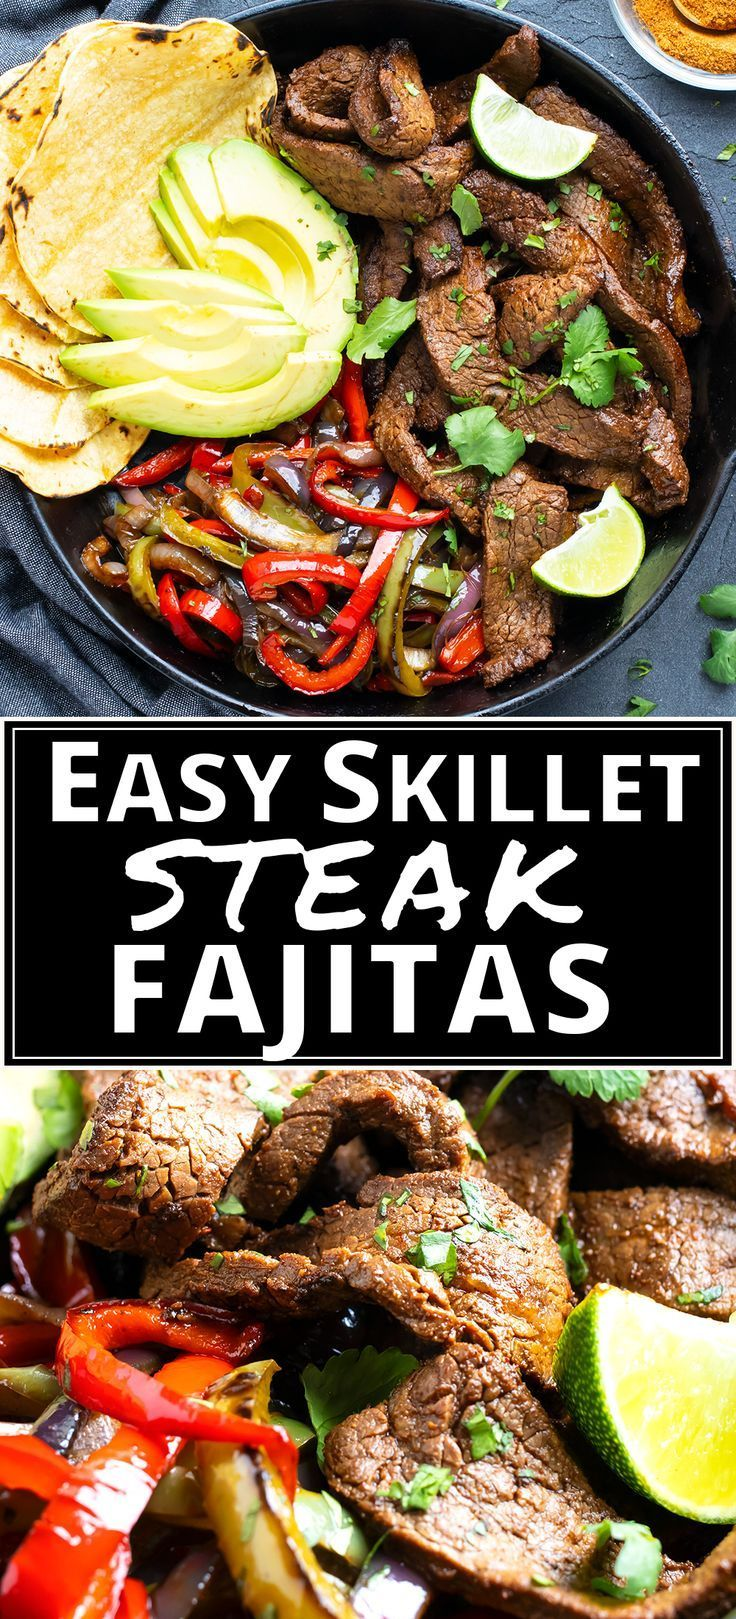 Easy Skillet Steak Fajitas Recipe - Evolving Table #steakfajitarecipe